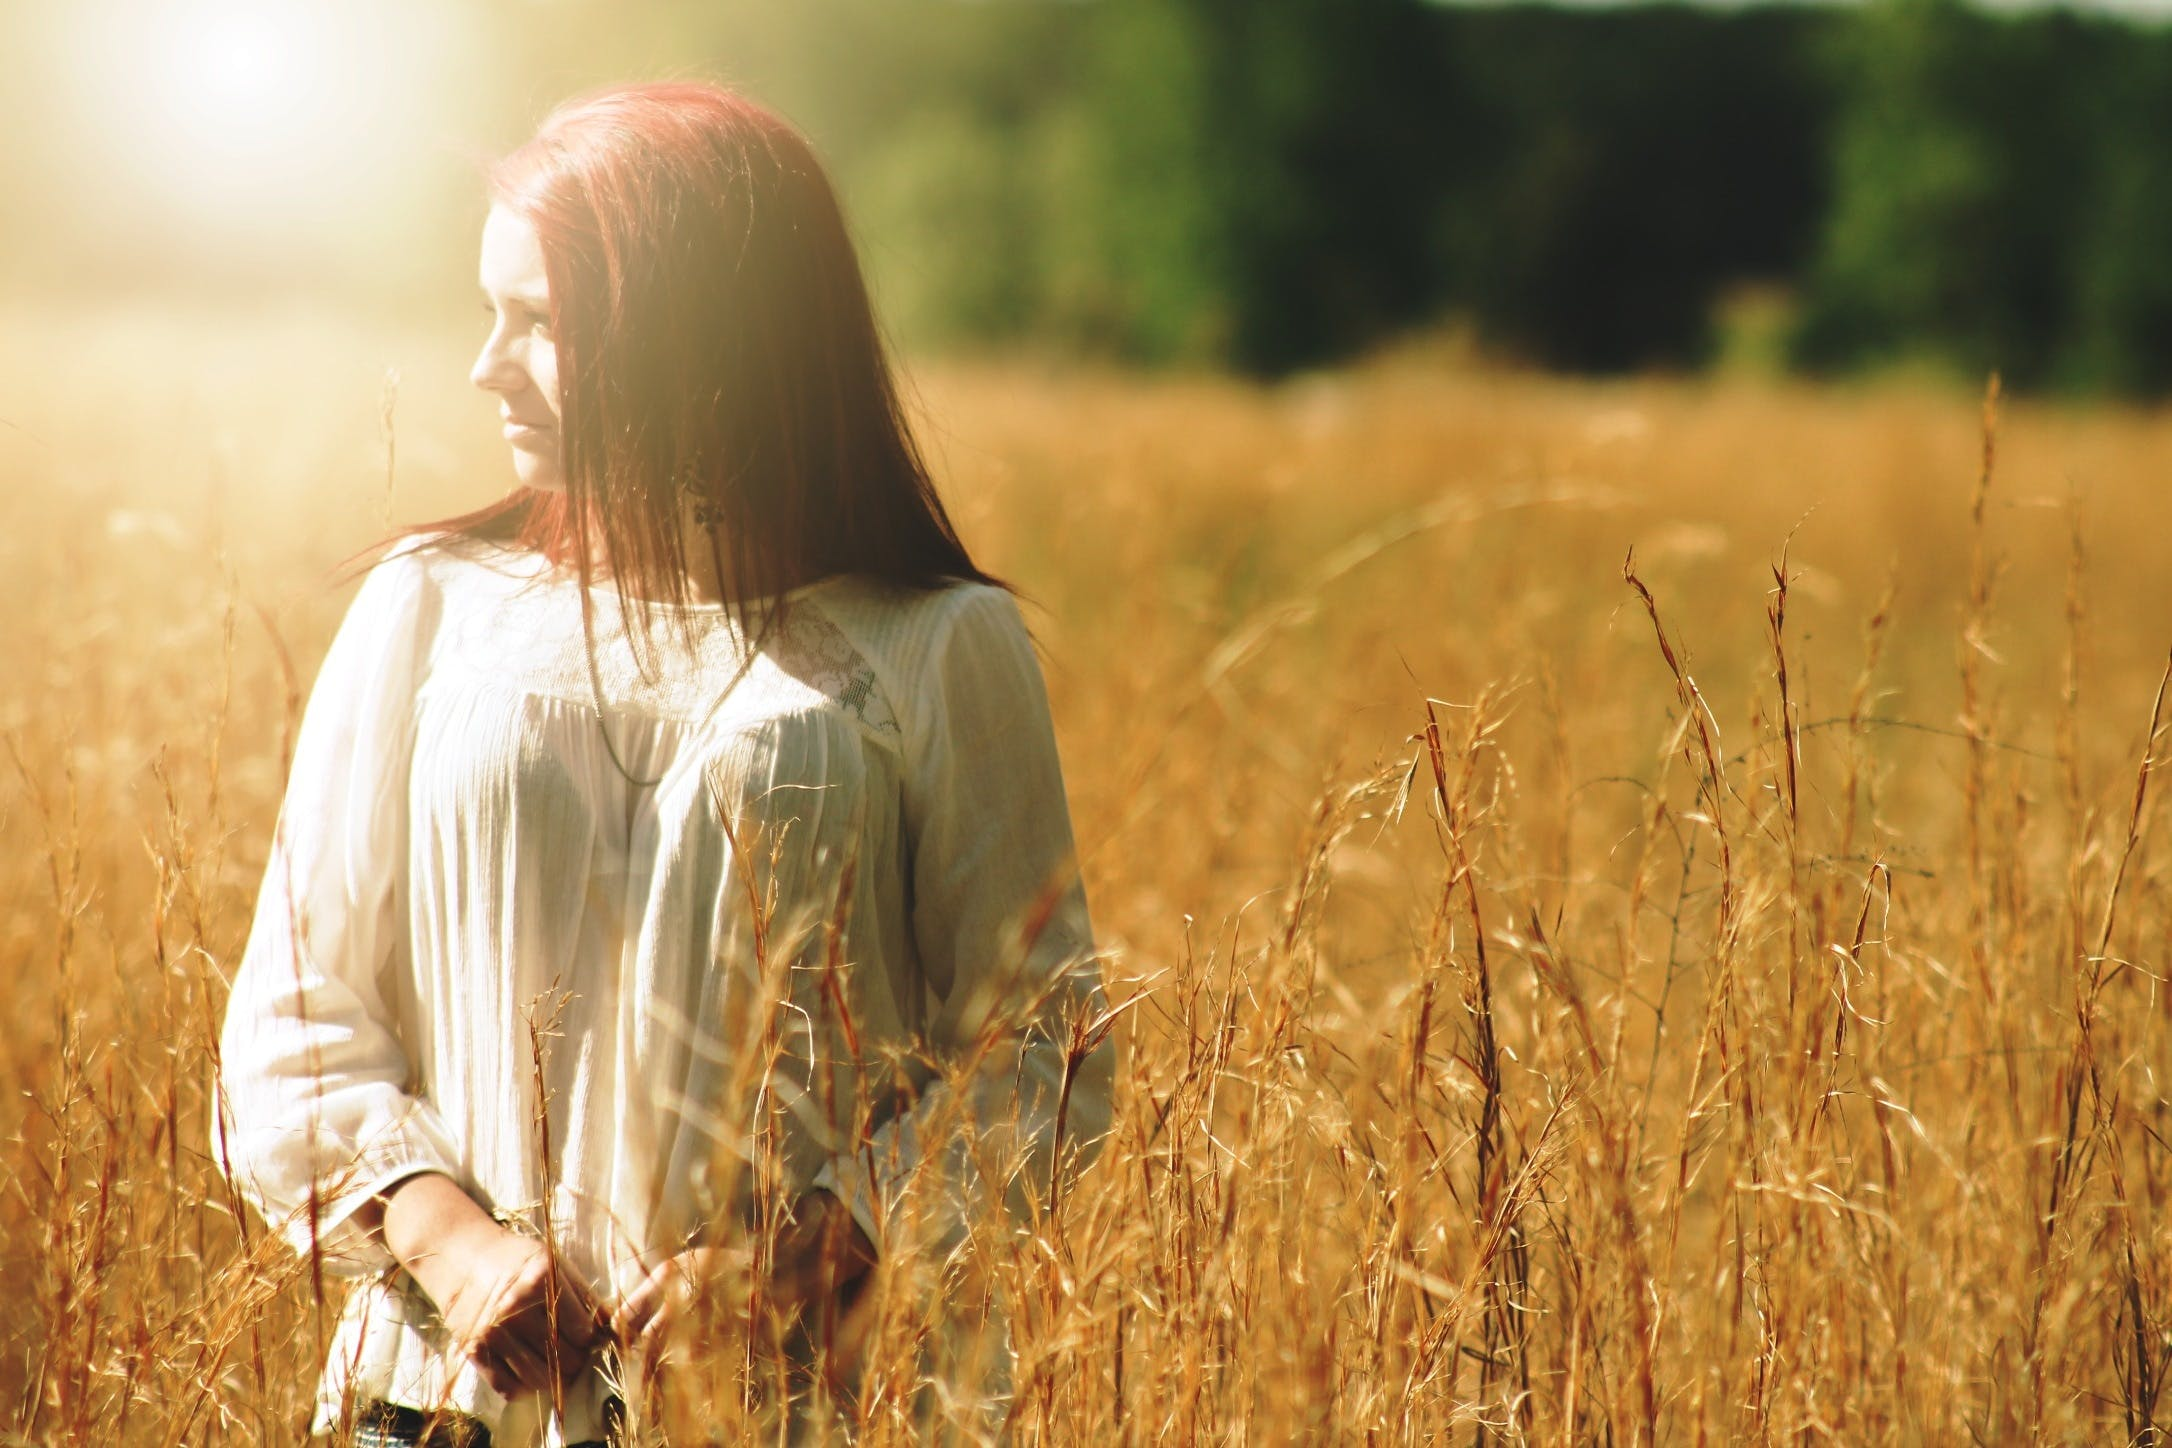 Woman Wearing White Long Sleeved Shirt Standing in Brown Grass Field